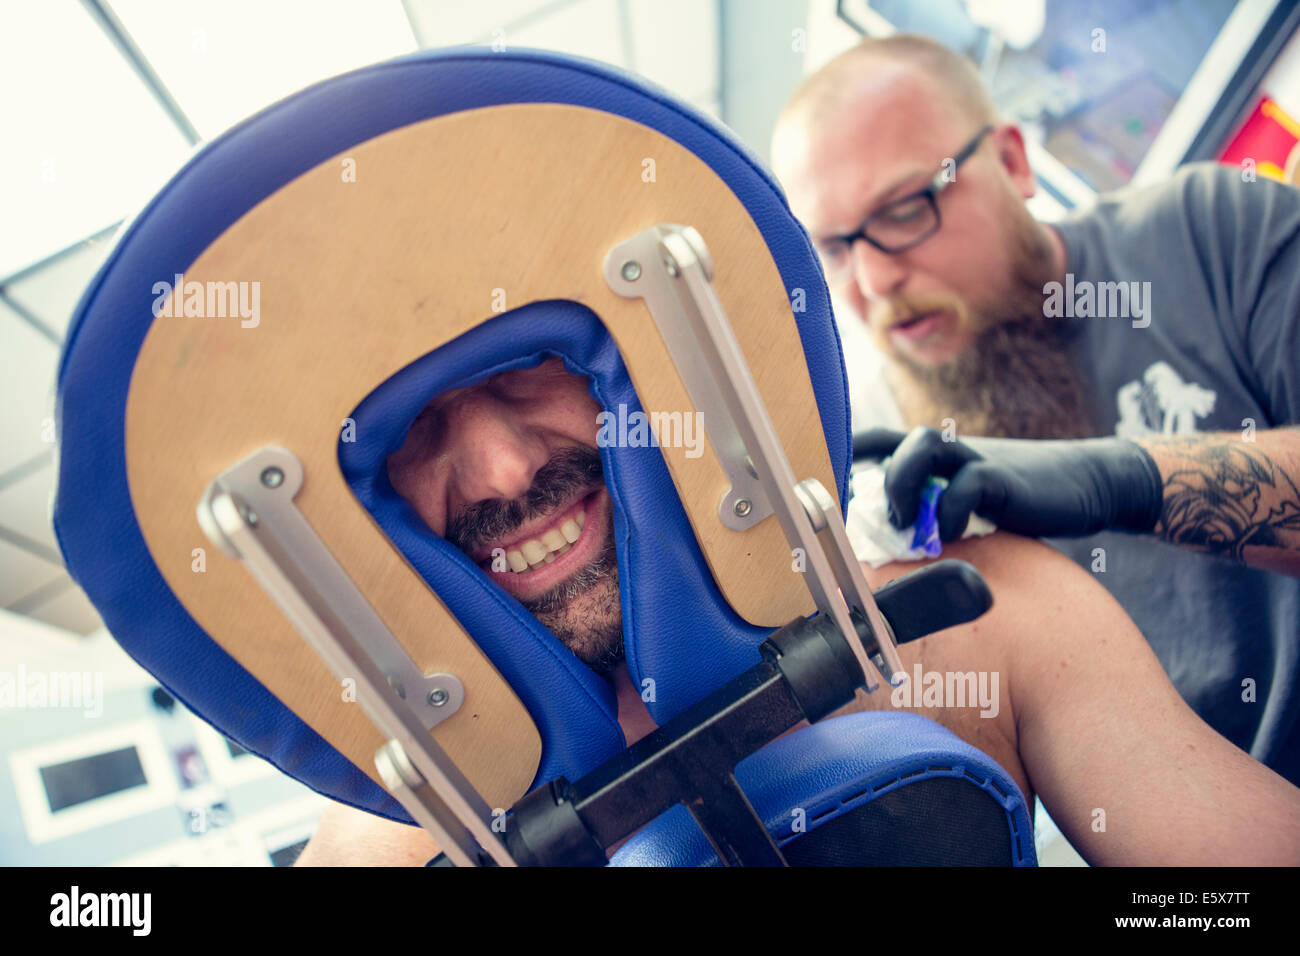 Male customers face between headrest in tattoo parlor - Stock Image